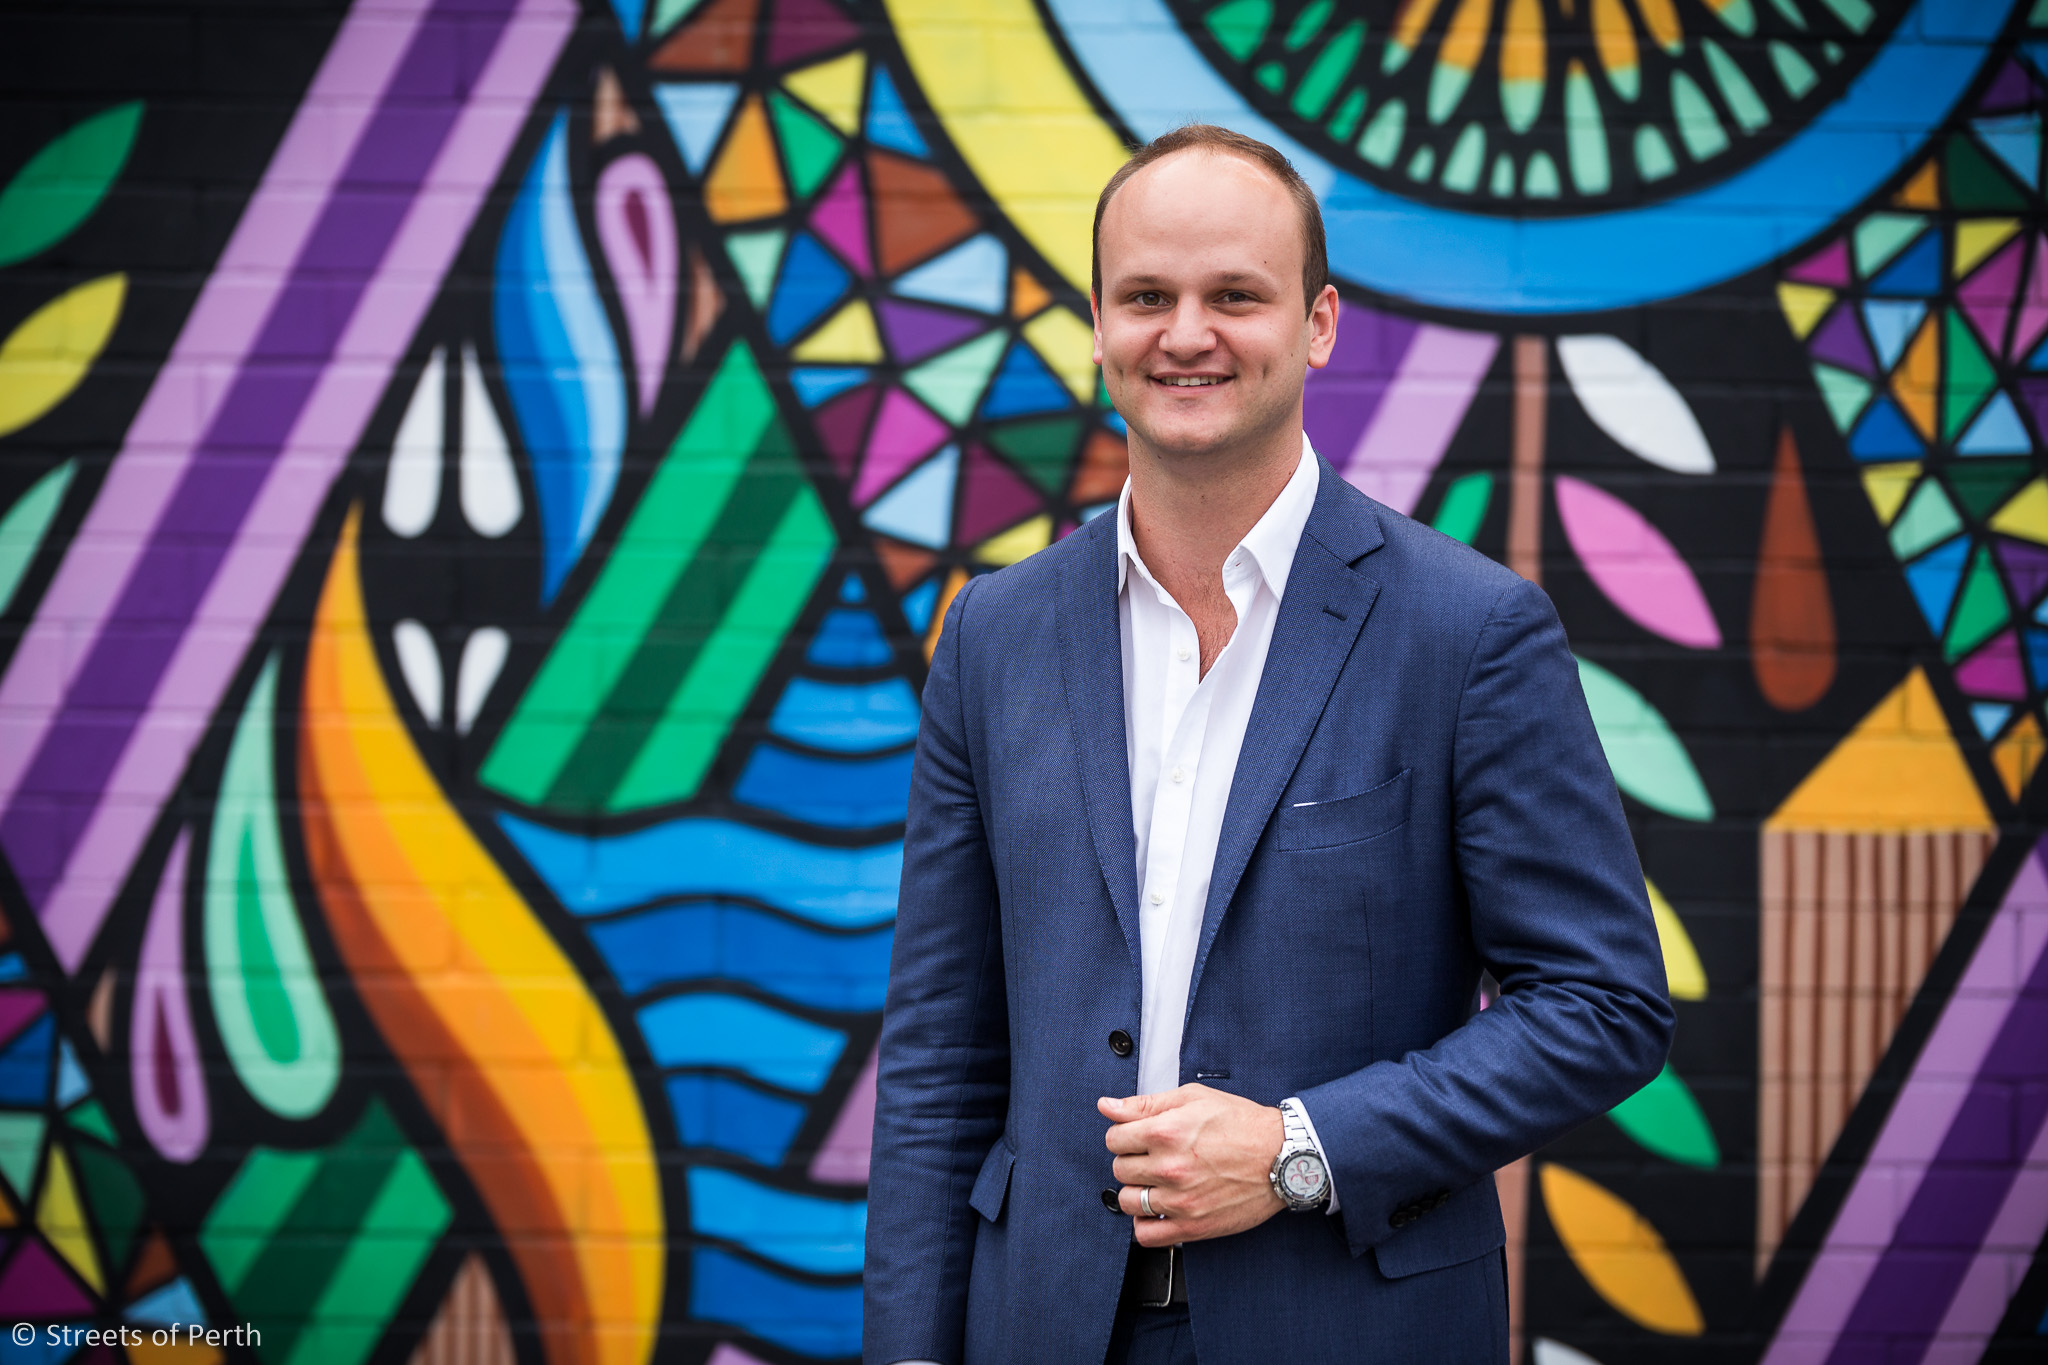 Perth Lord Mayoral candidate Reece Harley is a keen supporter of public art projects like this mural by Beastman and Vans the Omega in the open air car park on Murray St in the city.